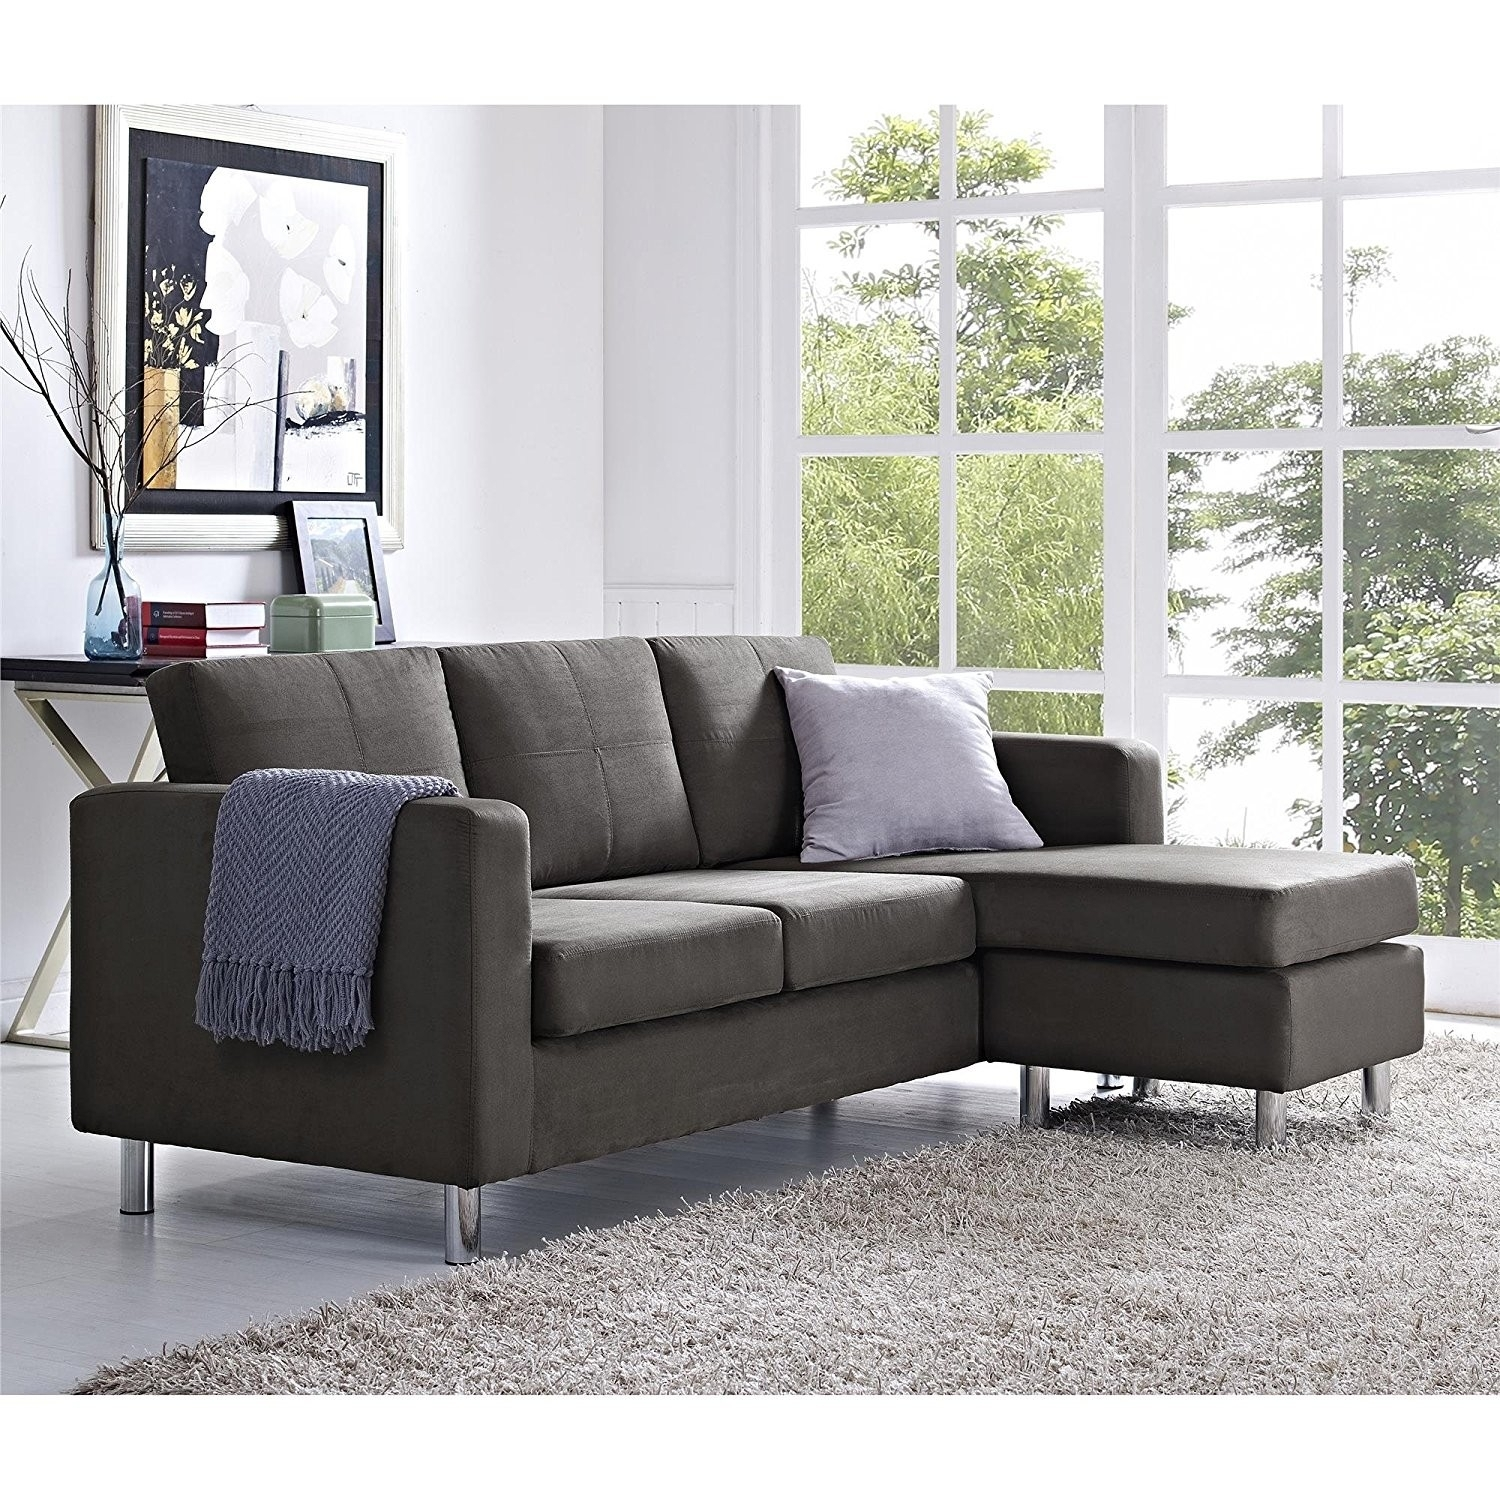 Crammed Sectionals For Small Spaces Inspirational Dorel Sectional with regard to Canada Sectional Sofas for Small Spaces (Image 2 of 10)